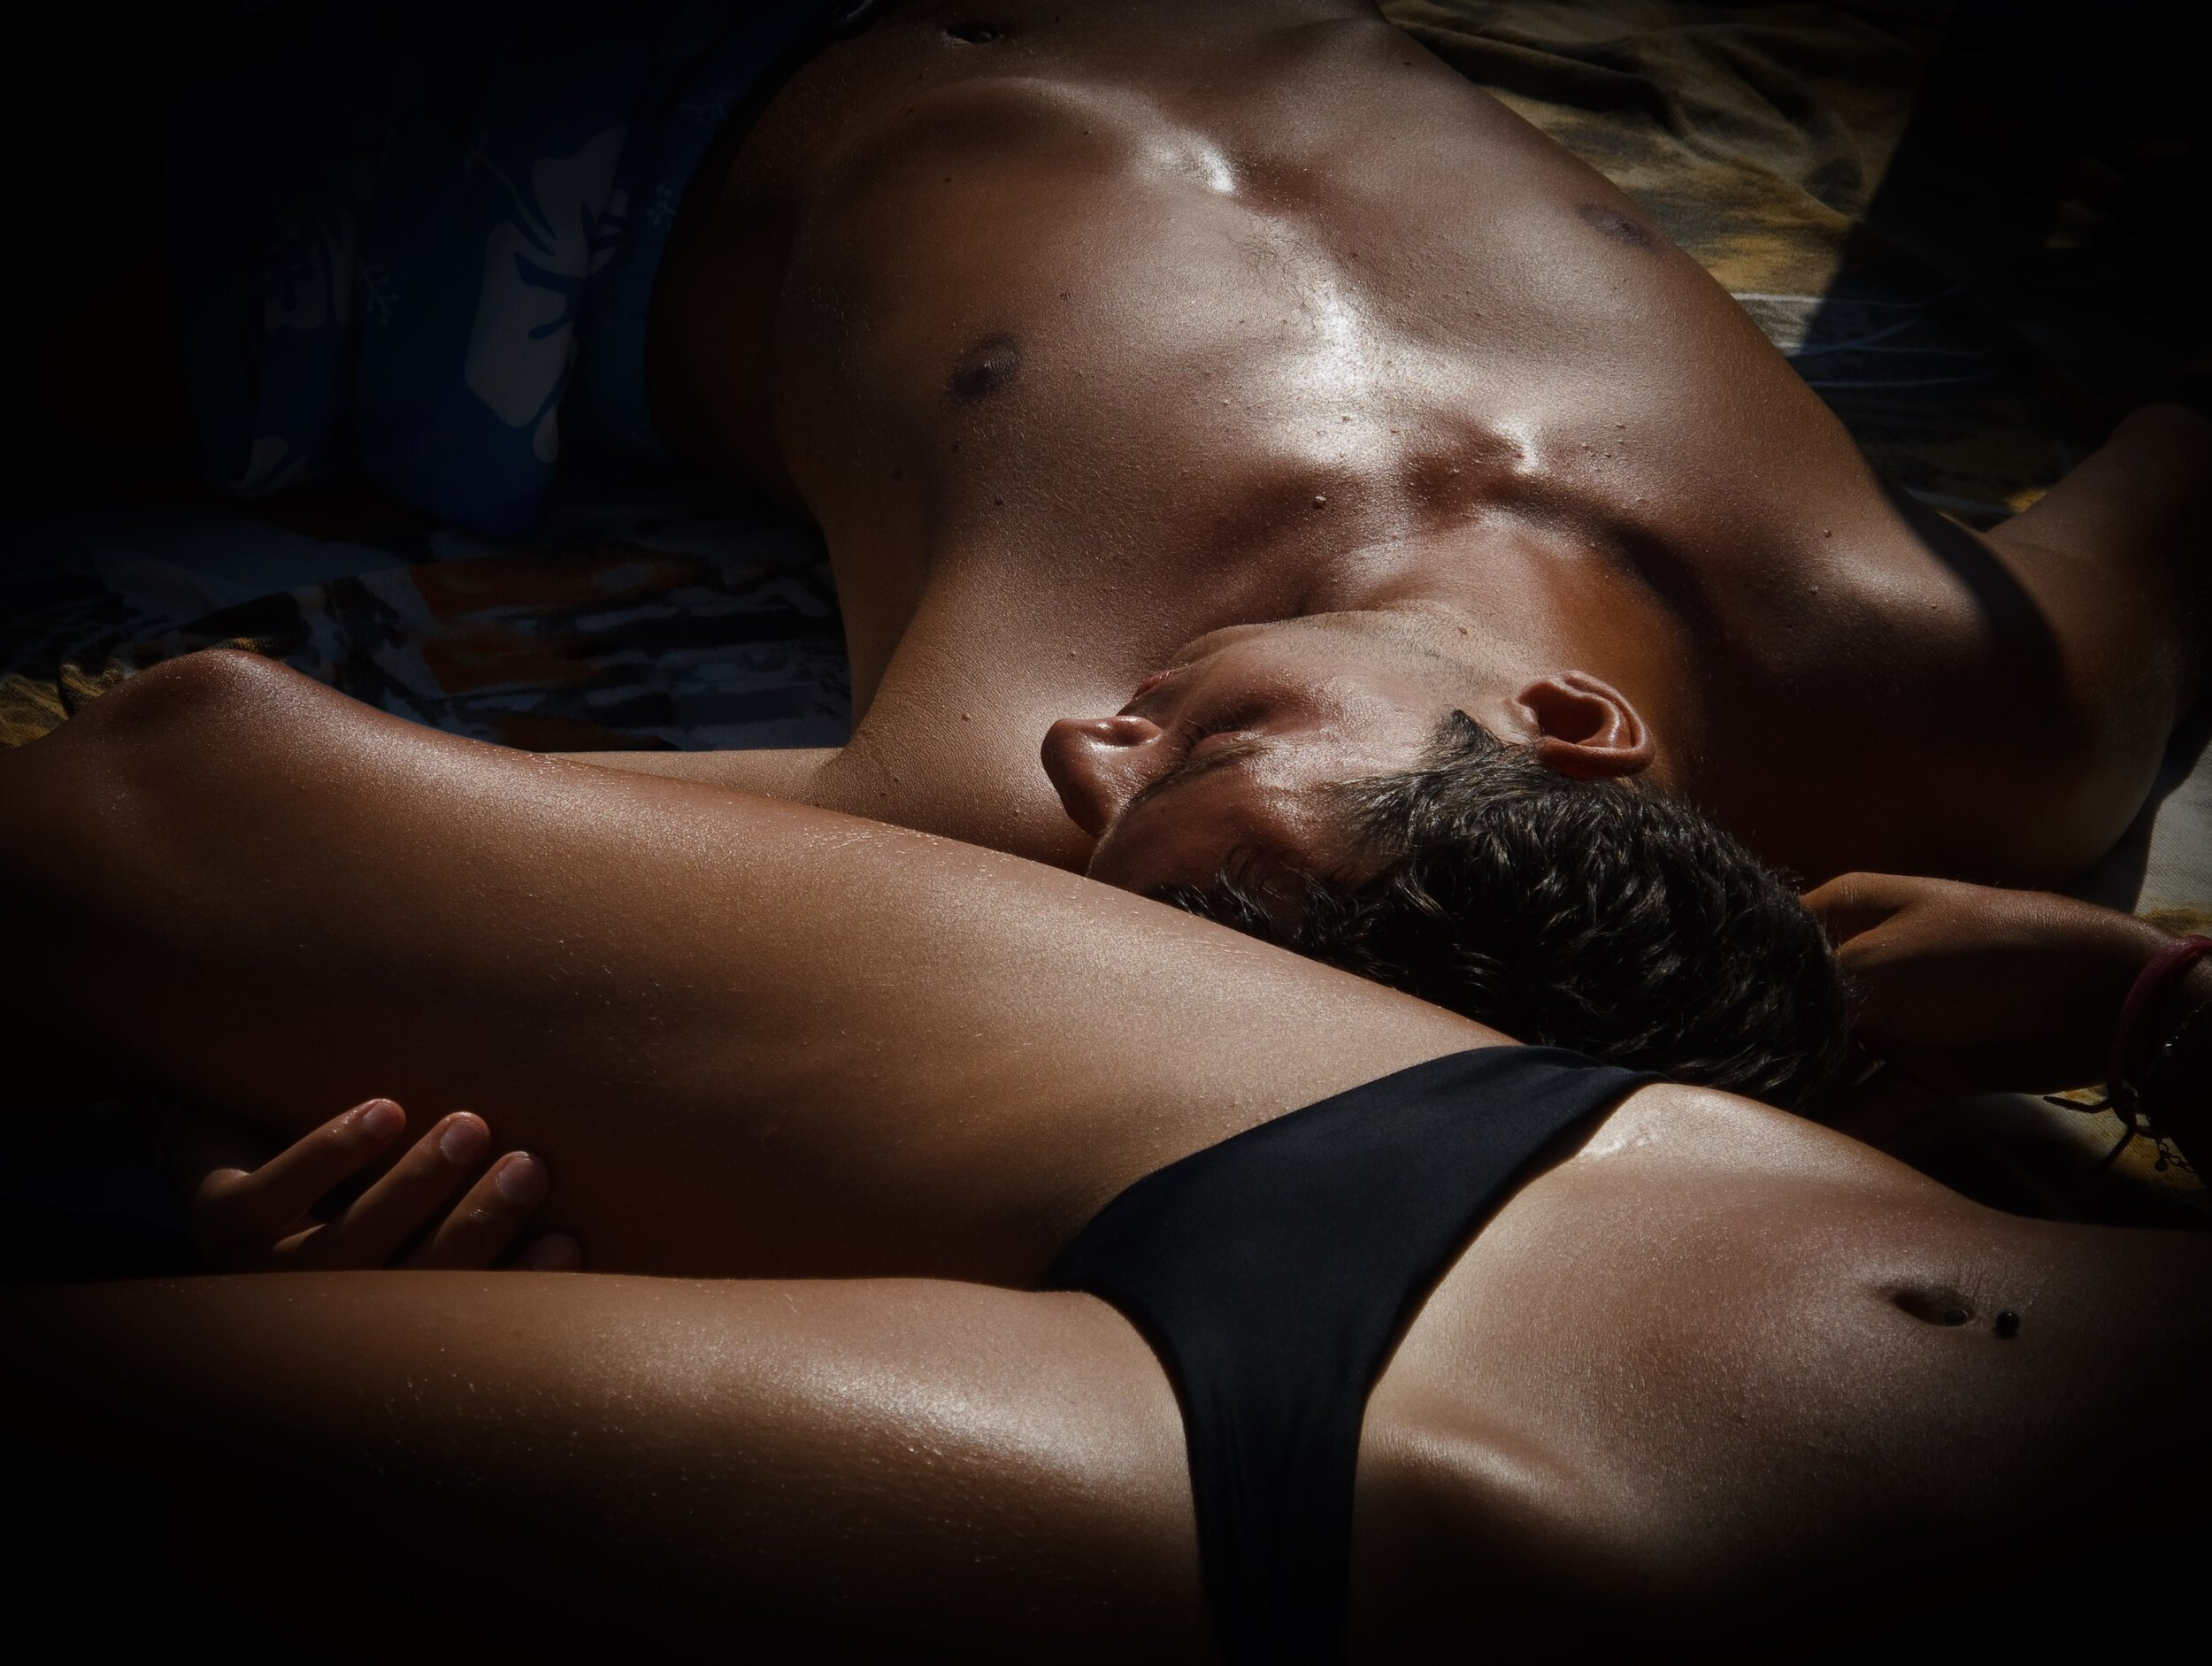 Man and woman lying together naked.